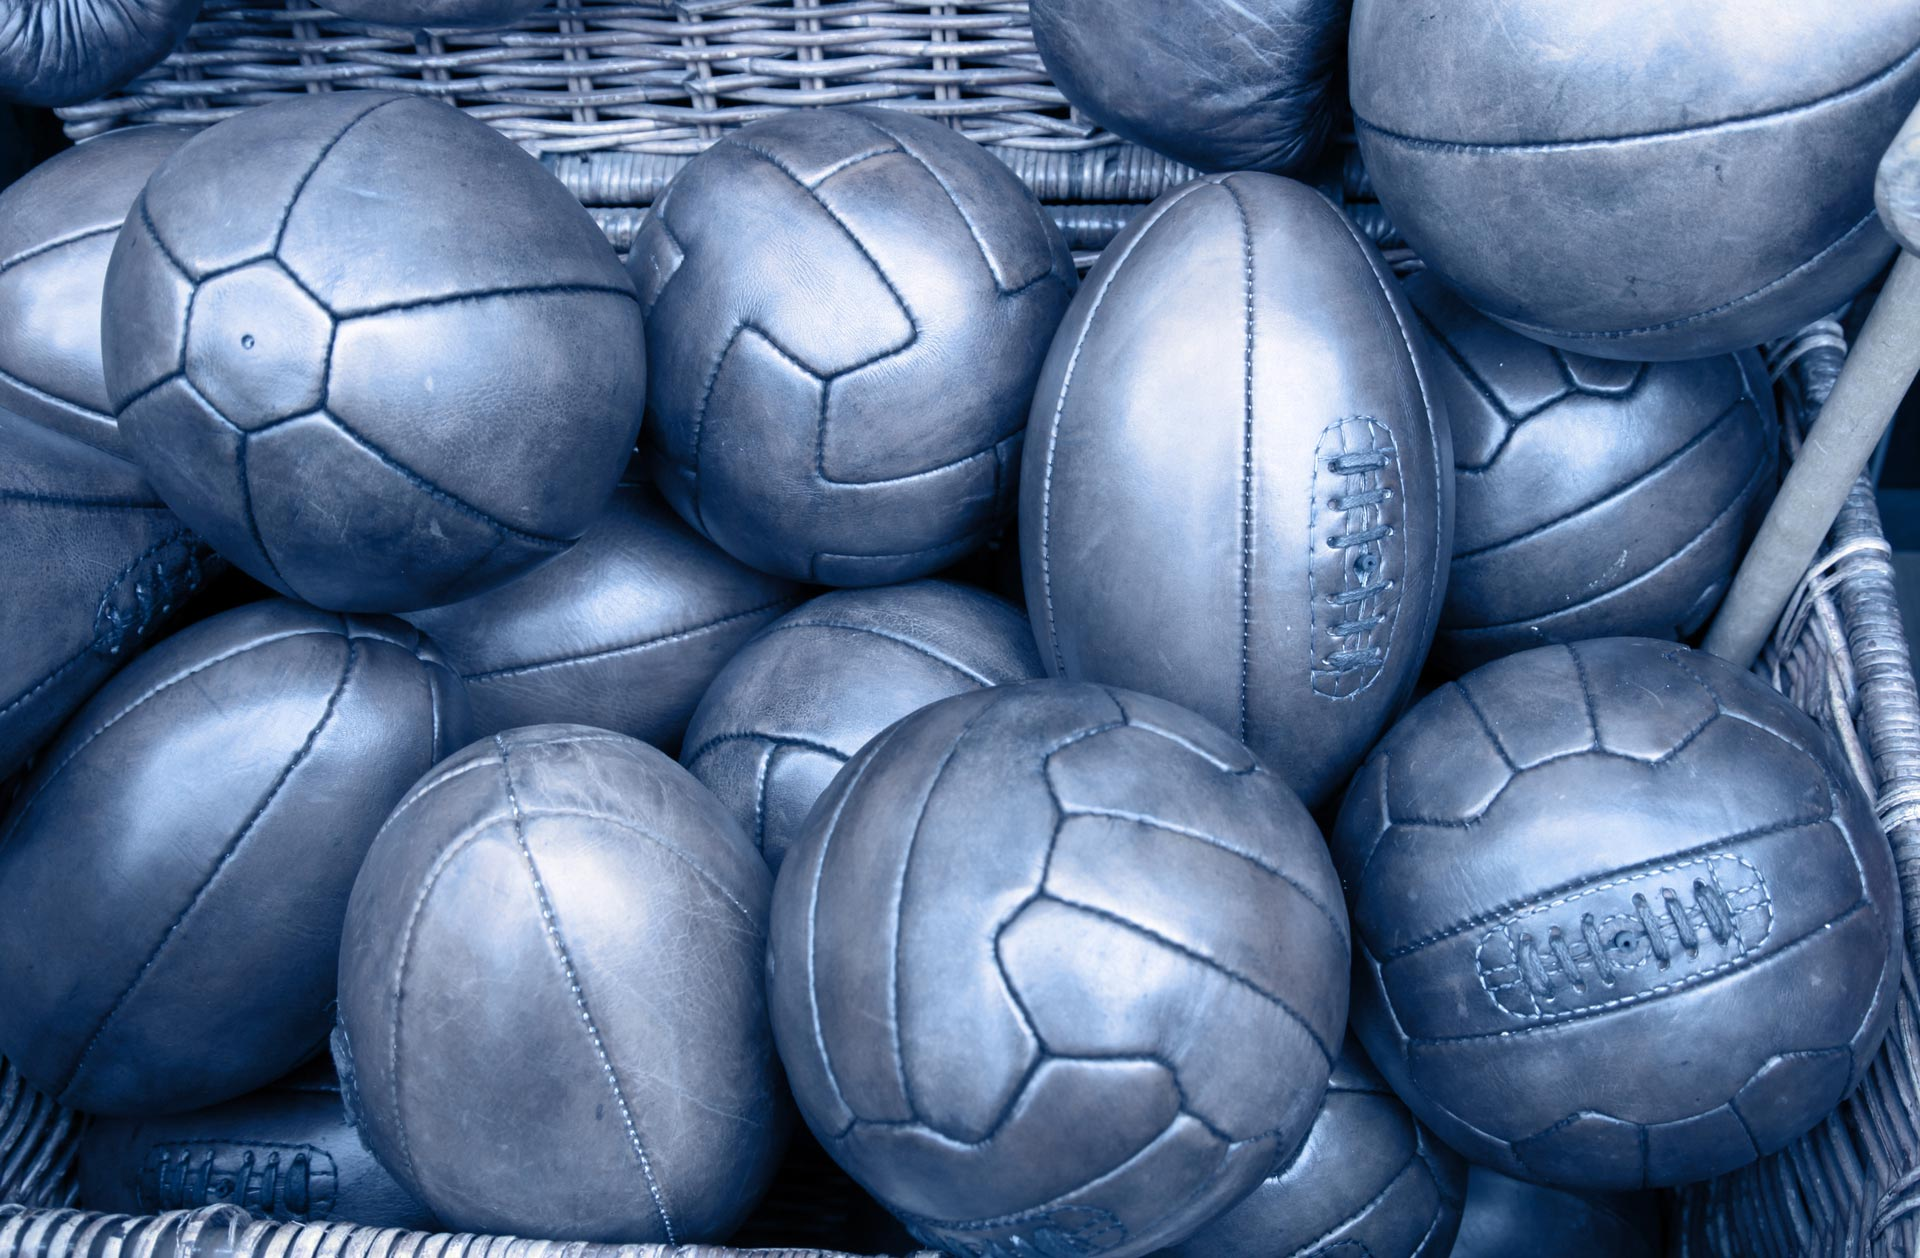 2-ballons-textile-rugby-foot-football-soccer-fabrication-distribution-holiprom